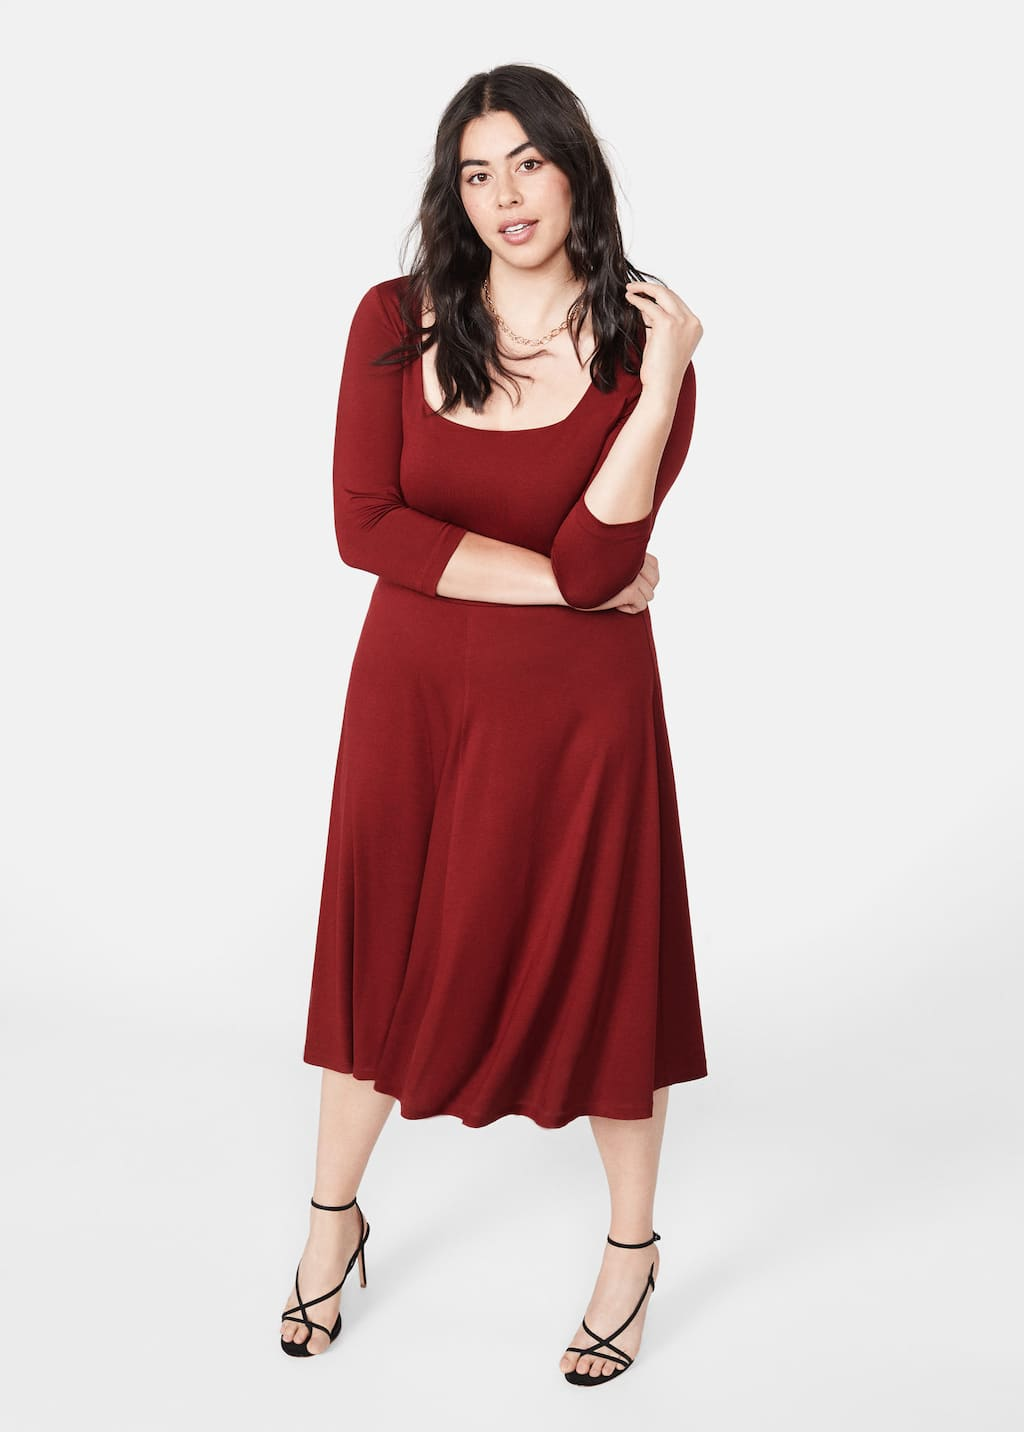 0fda9adef8d Flared midi dress - Plus sizes | Violeta by Mango Oman